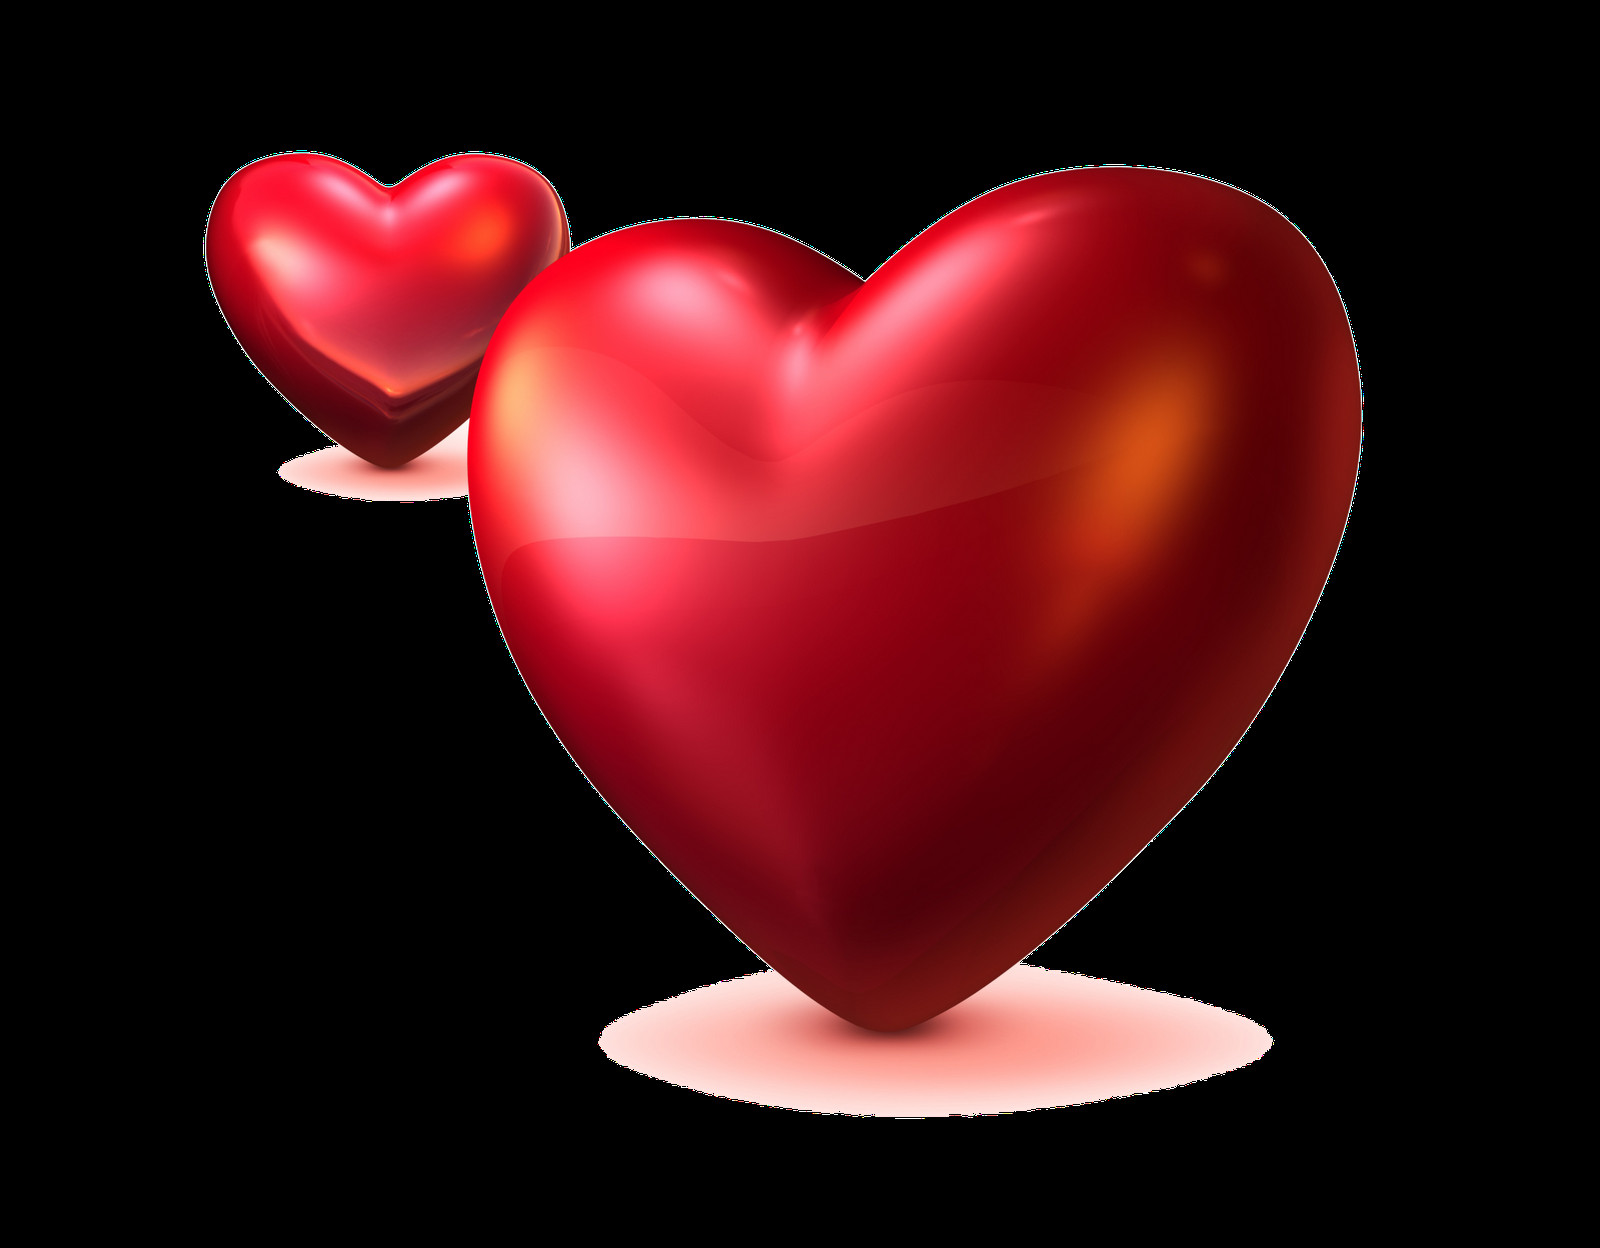 Red Heart with Love Luxury Love Png Transparent Png Of Red Heart with Love Fresh Love Heart Impremedia